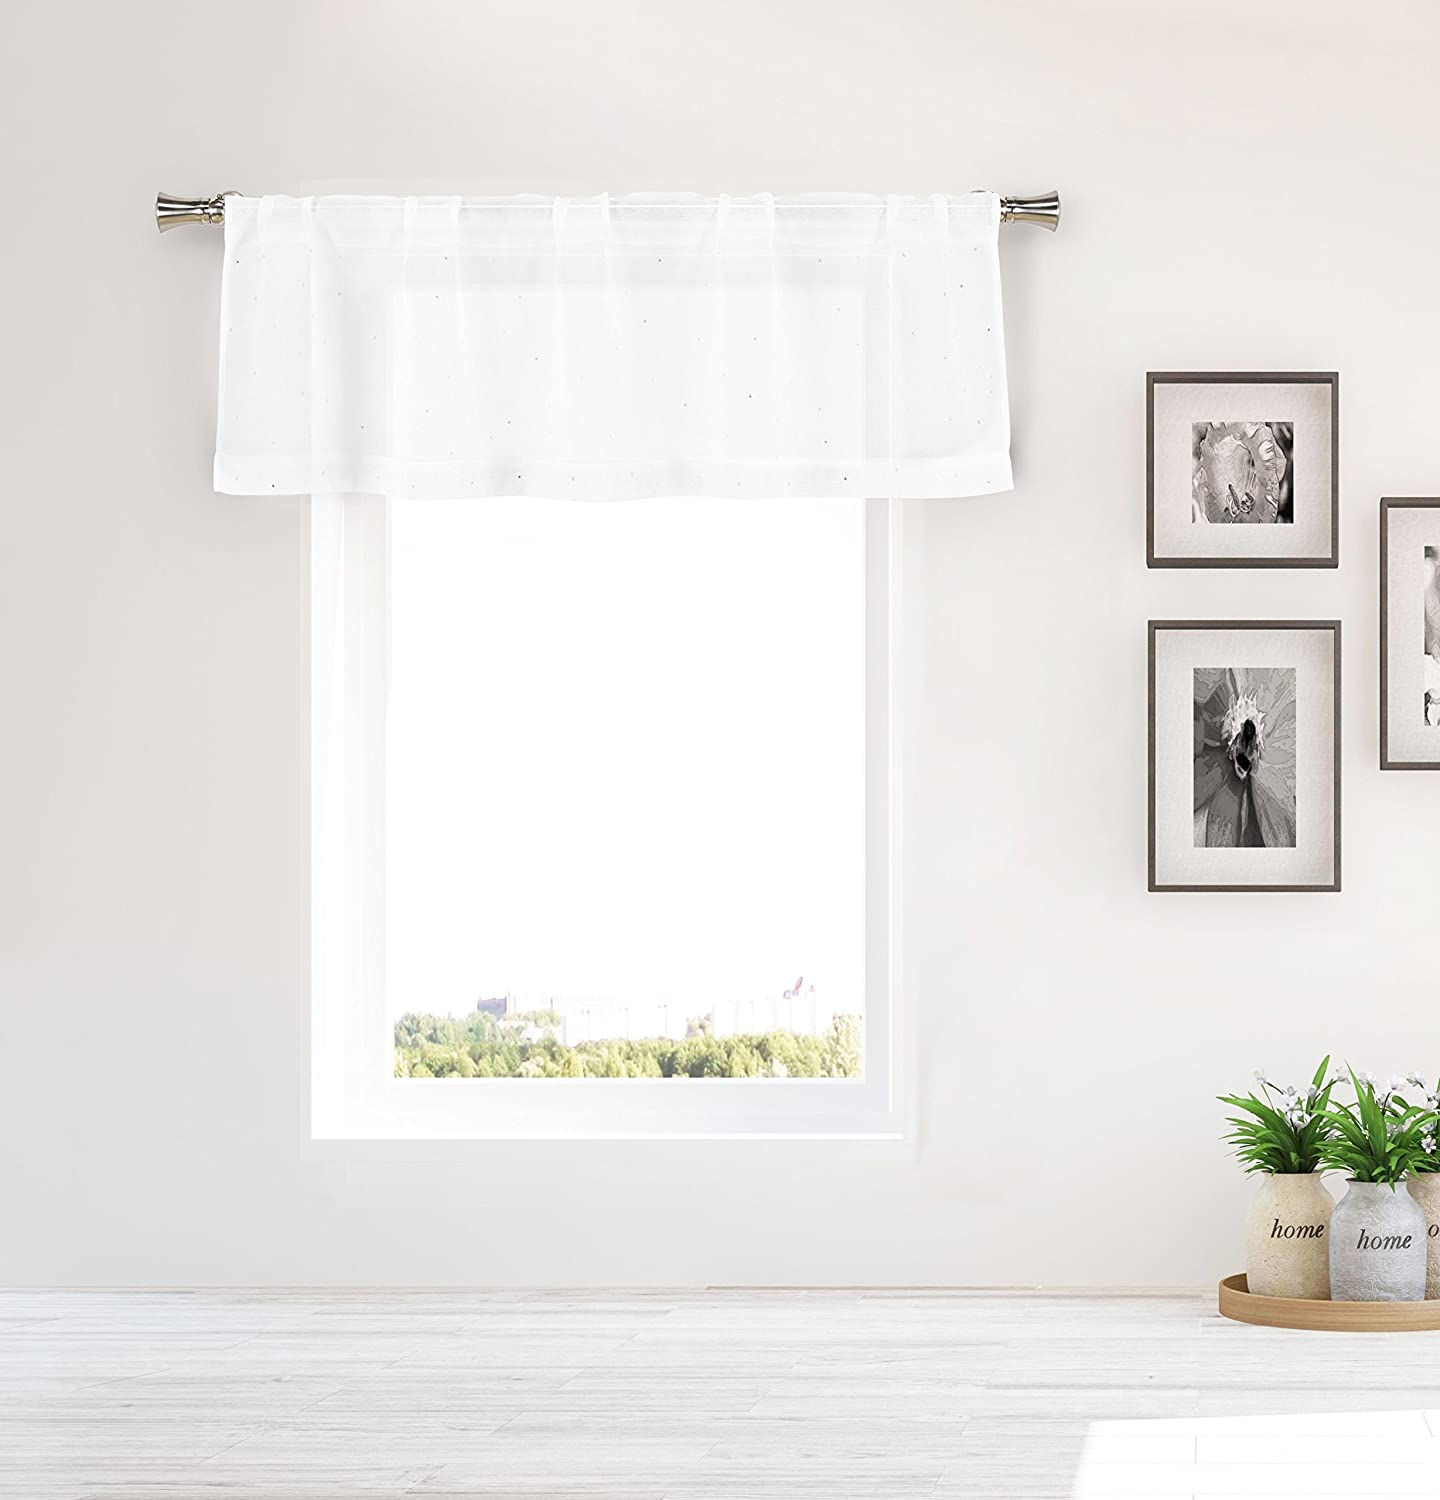 2 Tiers 36in L Each 8 to INFINITY BAM-DANI-KWC-TIERS-24 Pair Bathroom and More DANI Collection SHEER 2 Piece Window Curtain Caf/é//Tier Set Pure White with Crystal Rhinestones